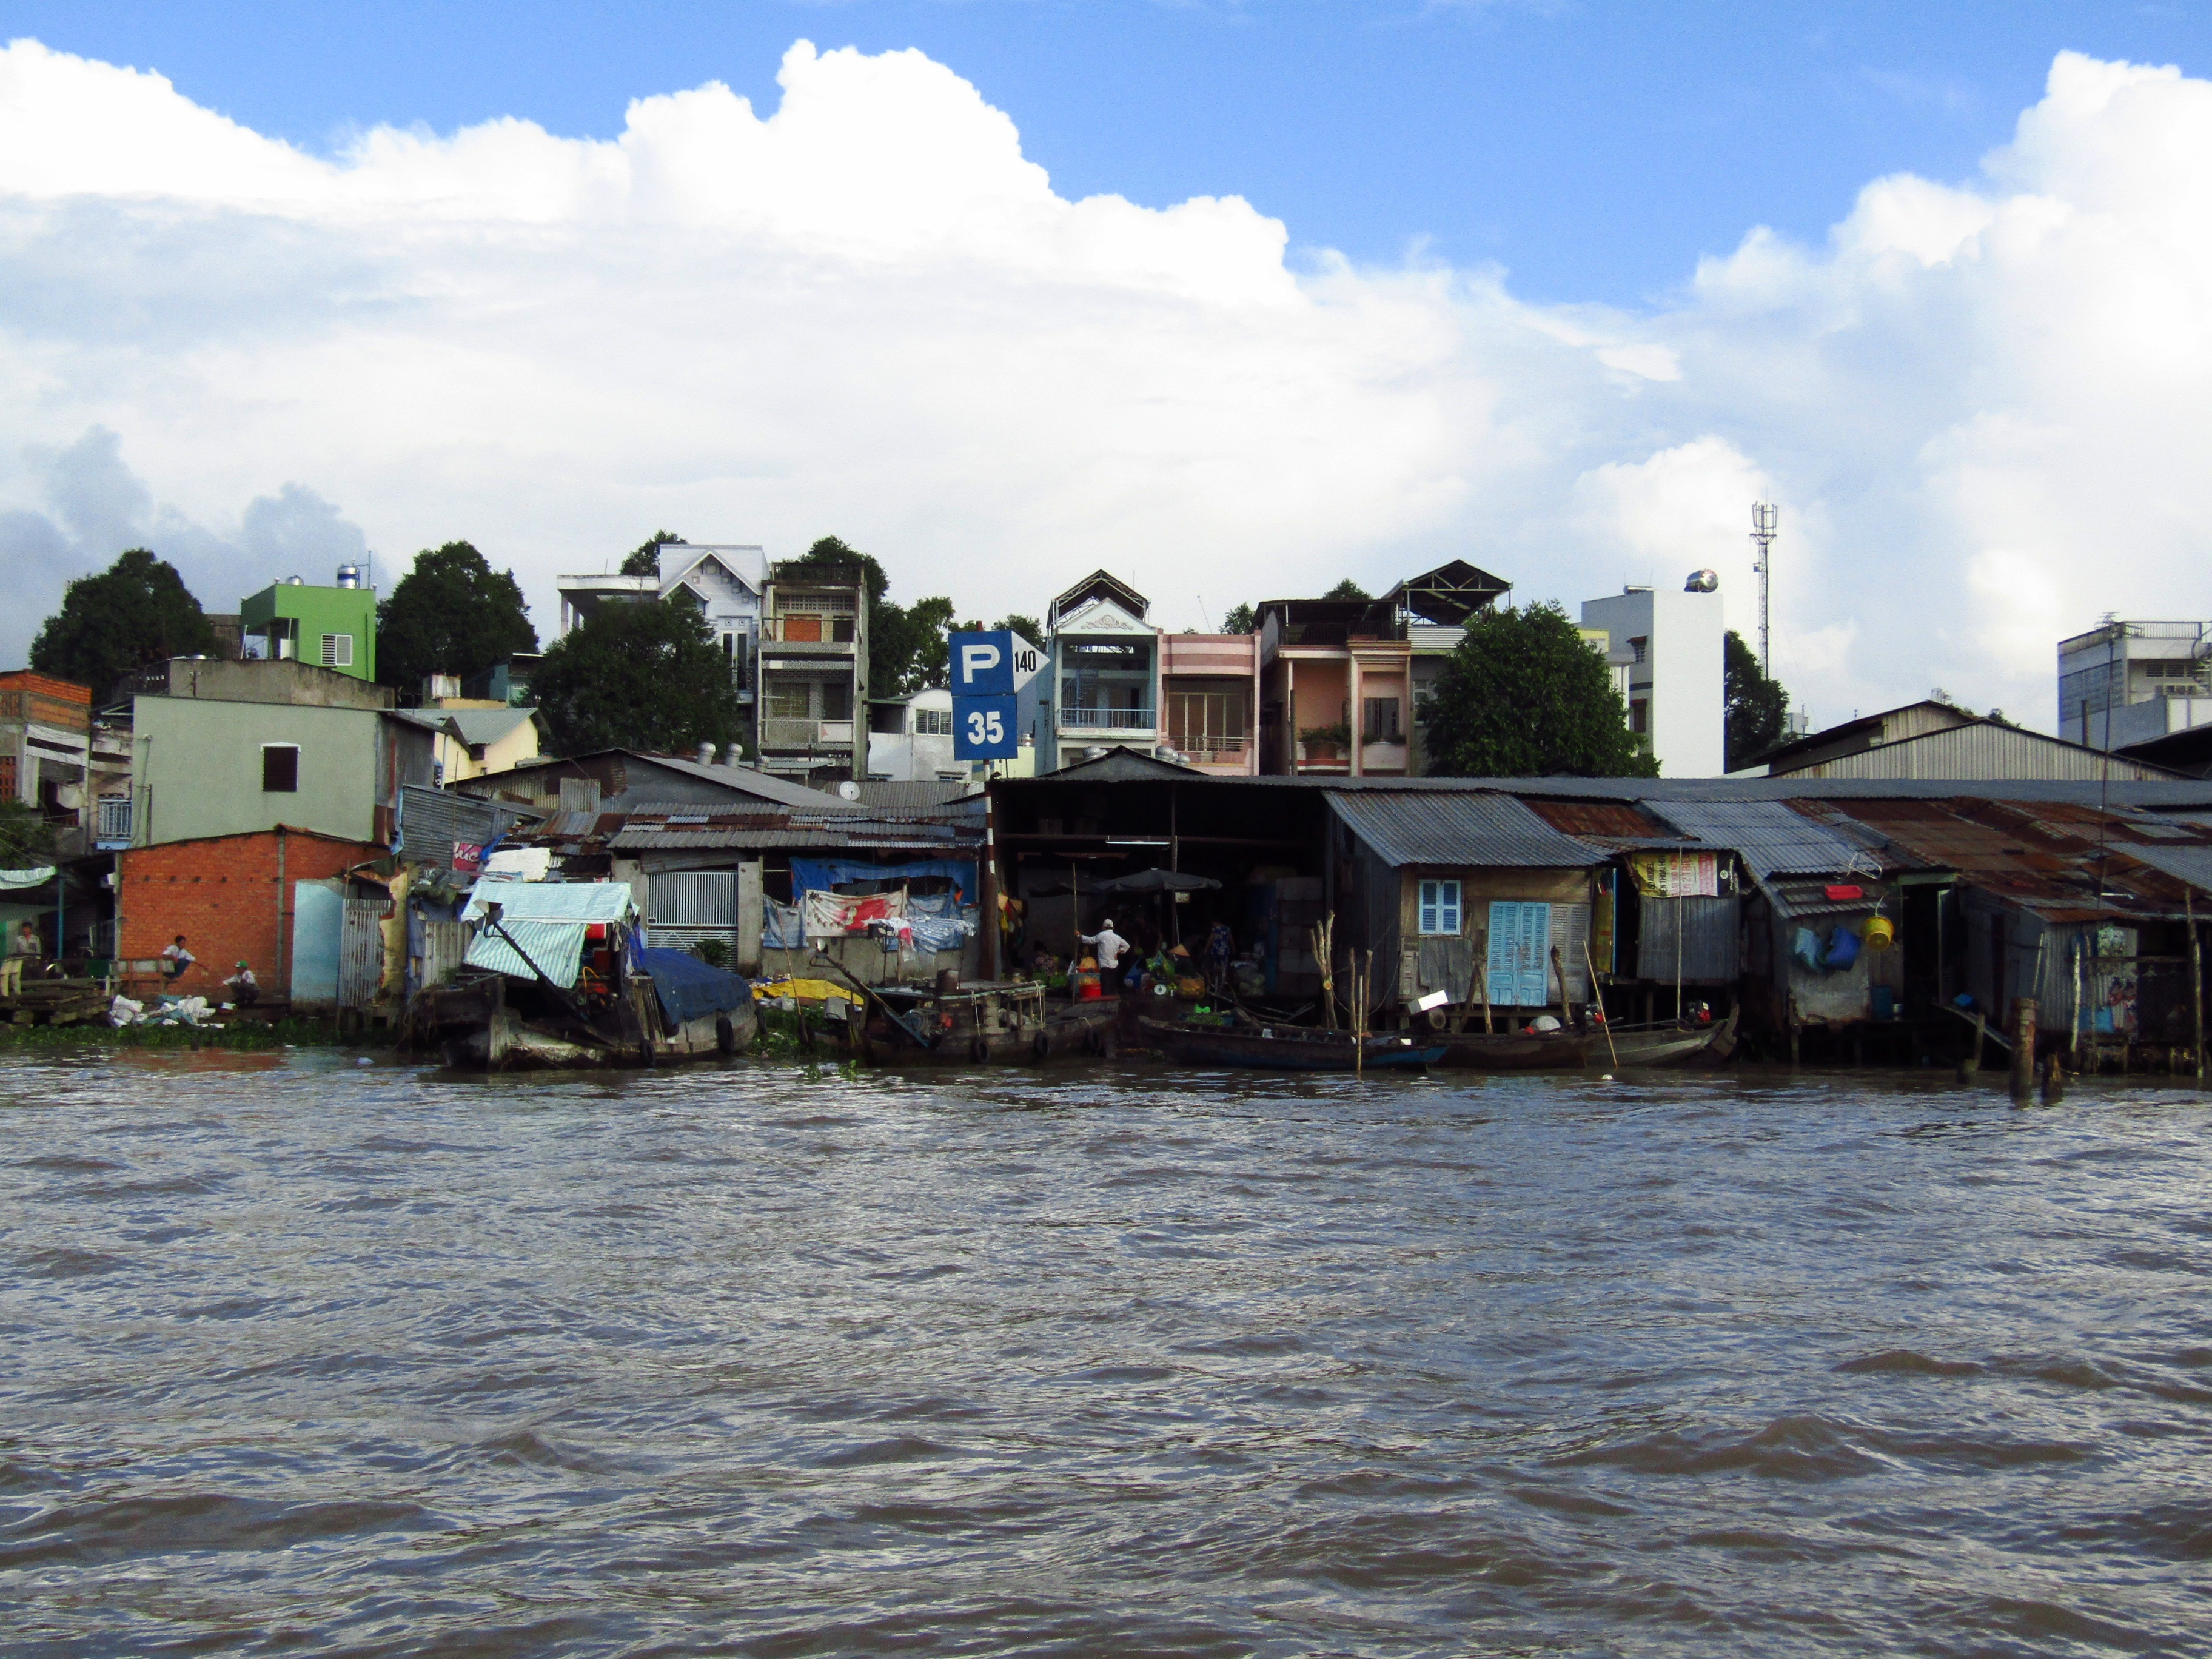 Dwellings on the bank of the Mekong river